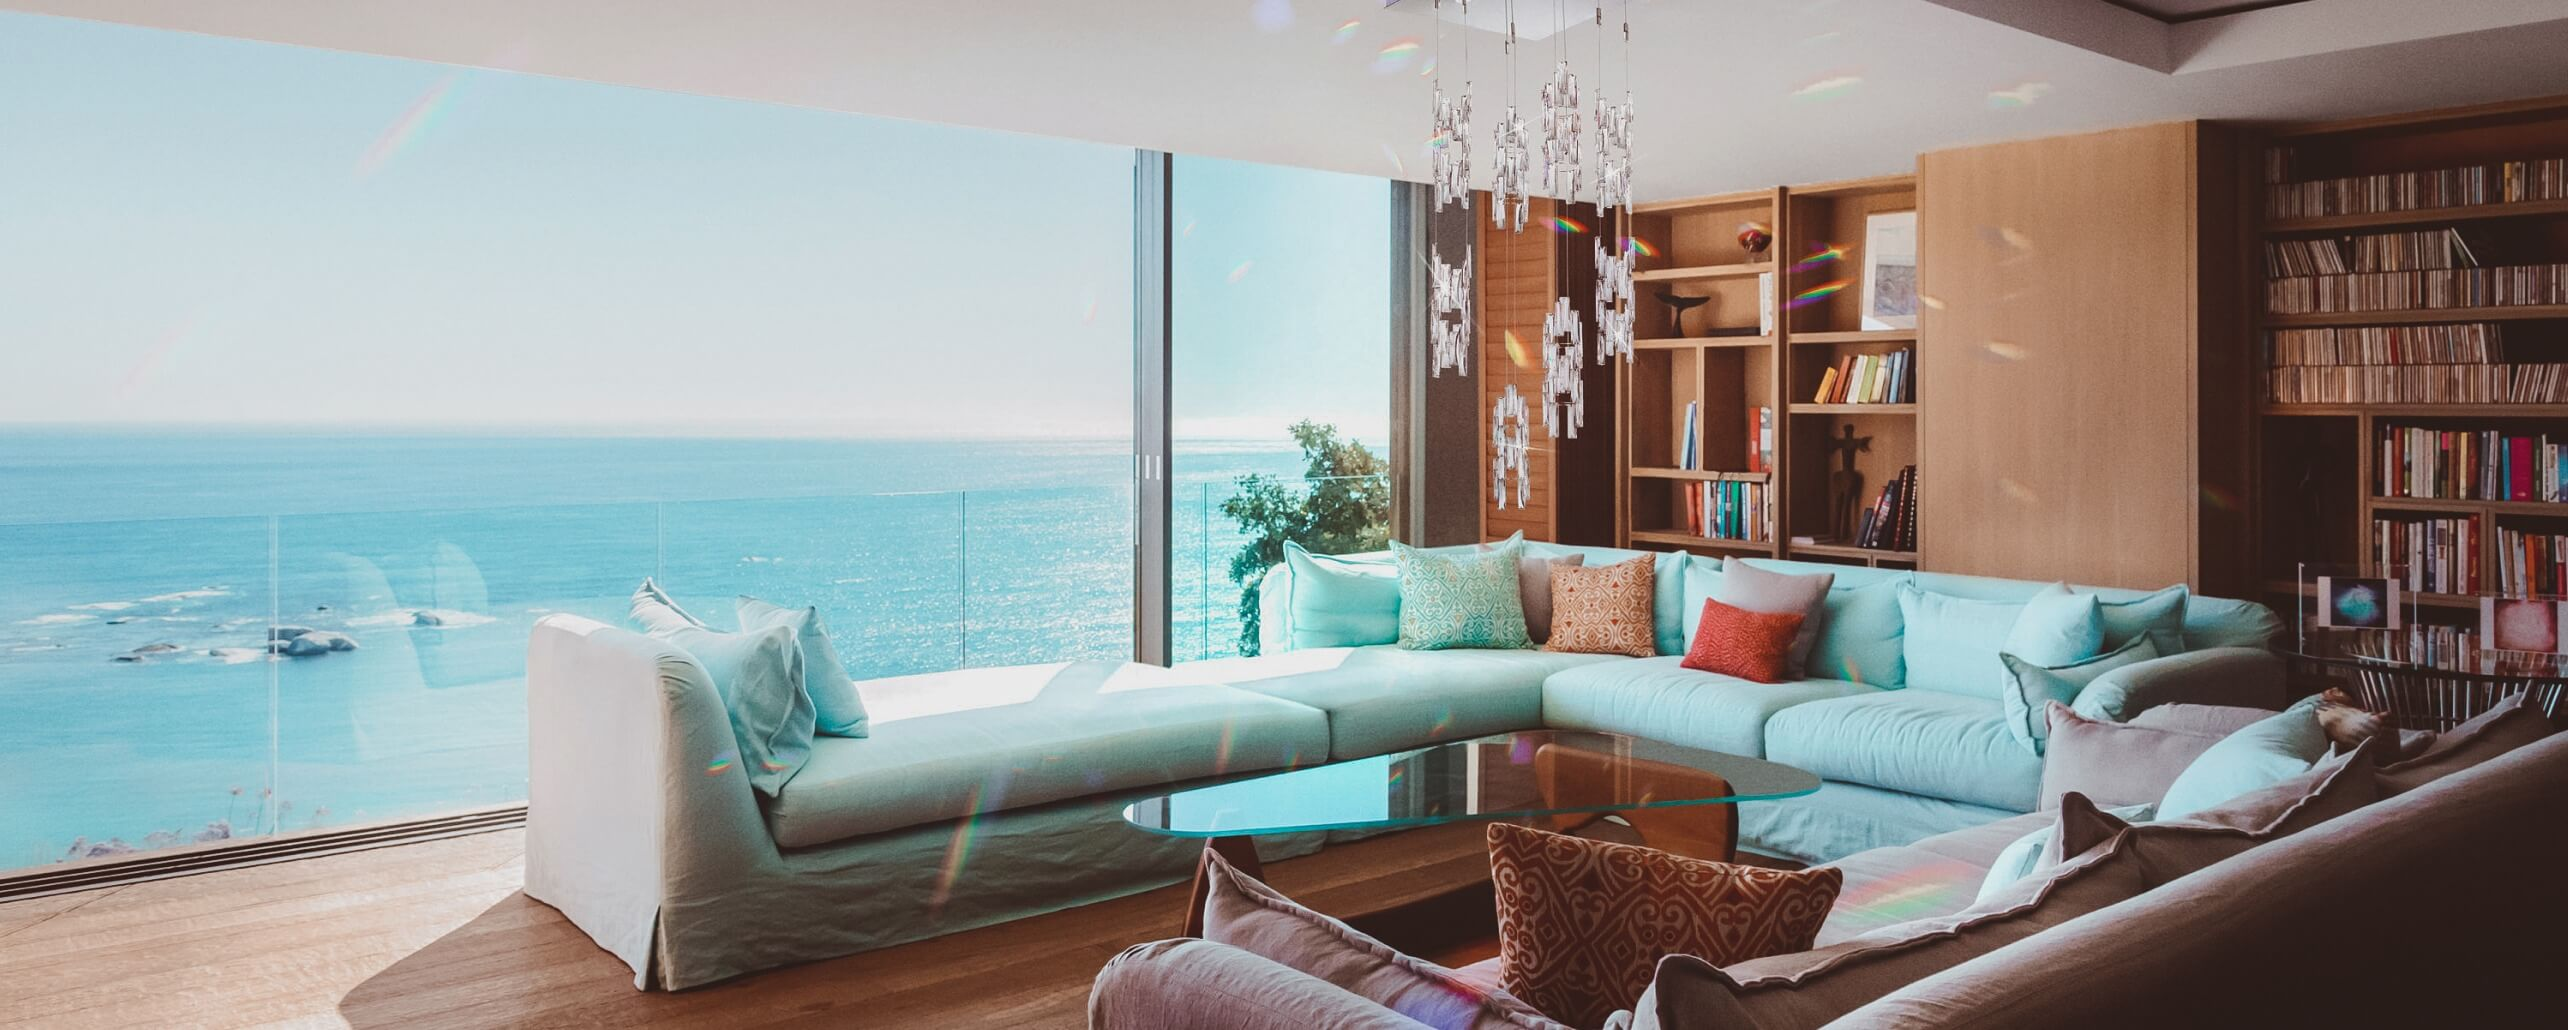 A view over the ocean from a living room. Full Width.